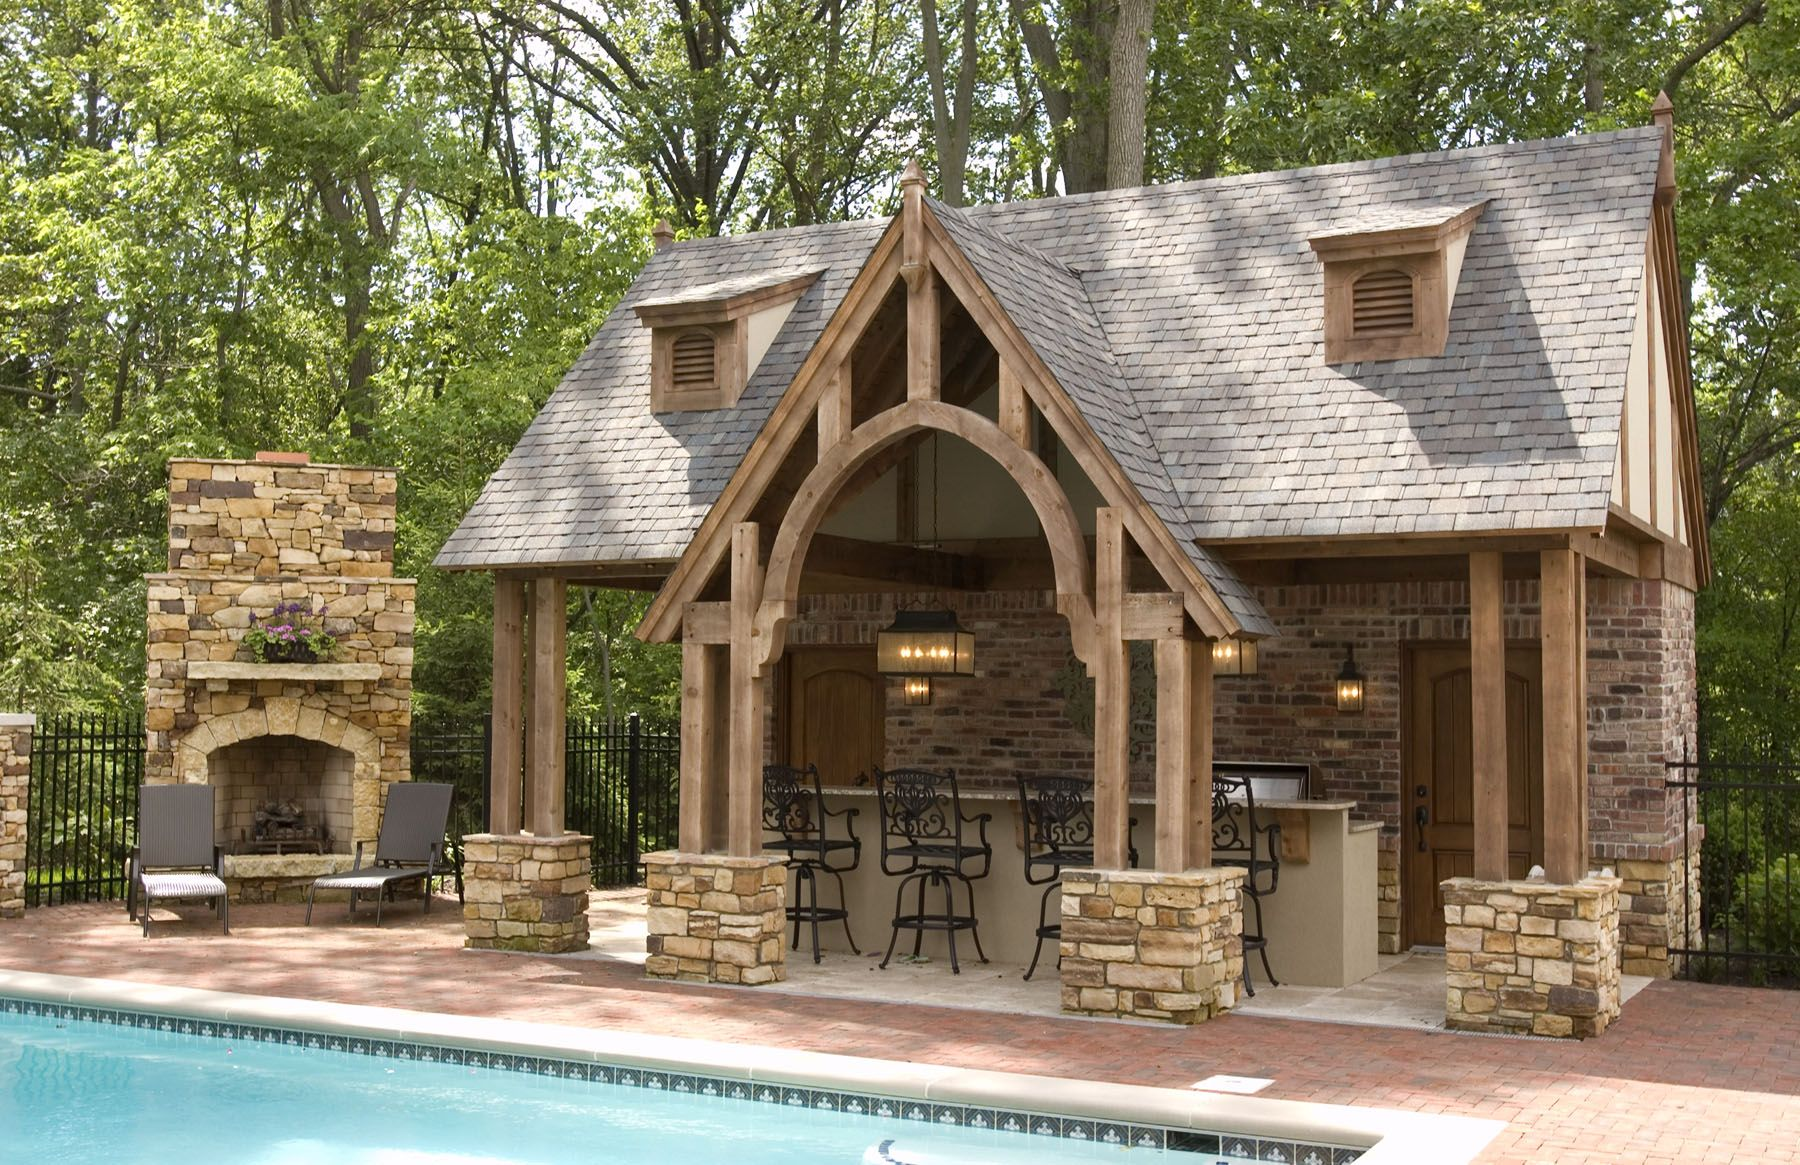 Outdoor pool and fireplace designs outdoor kitchen and pool house